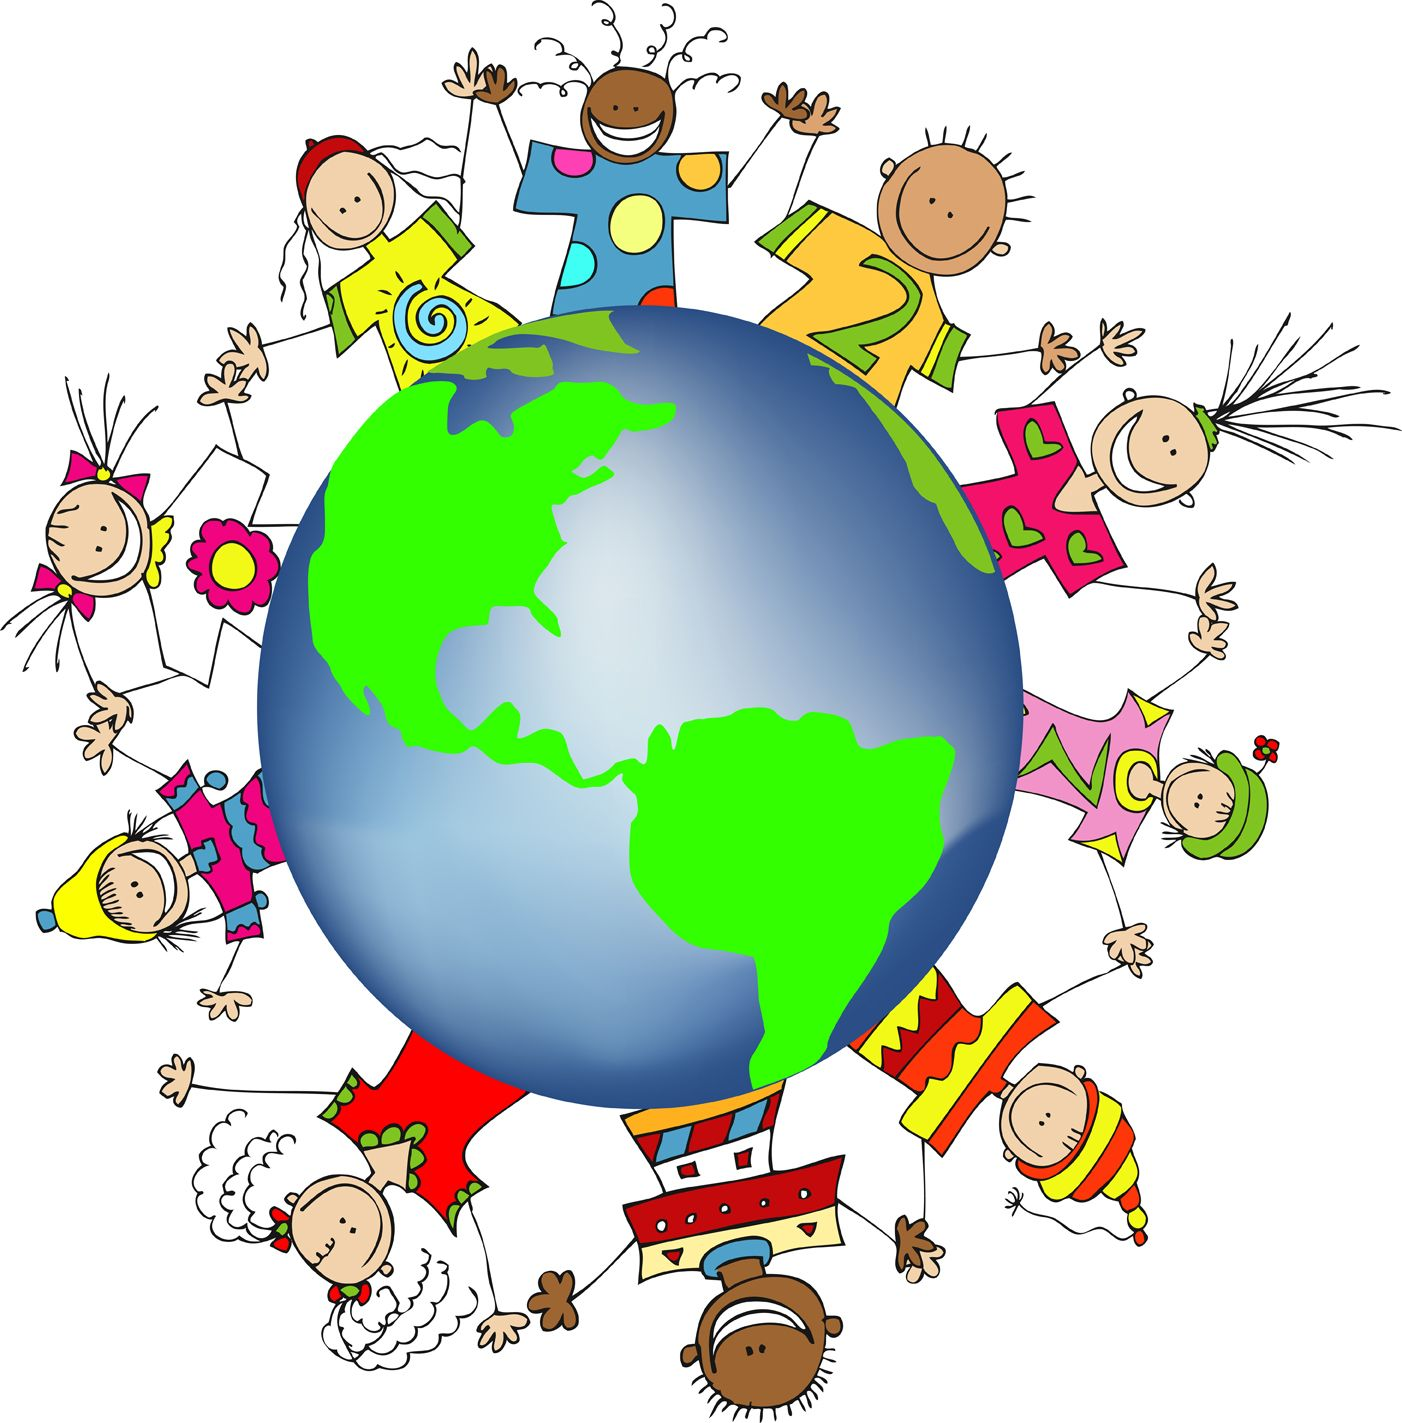 small resolution of kids world hands friends networks globe illustration small free